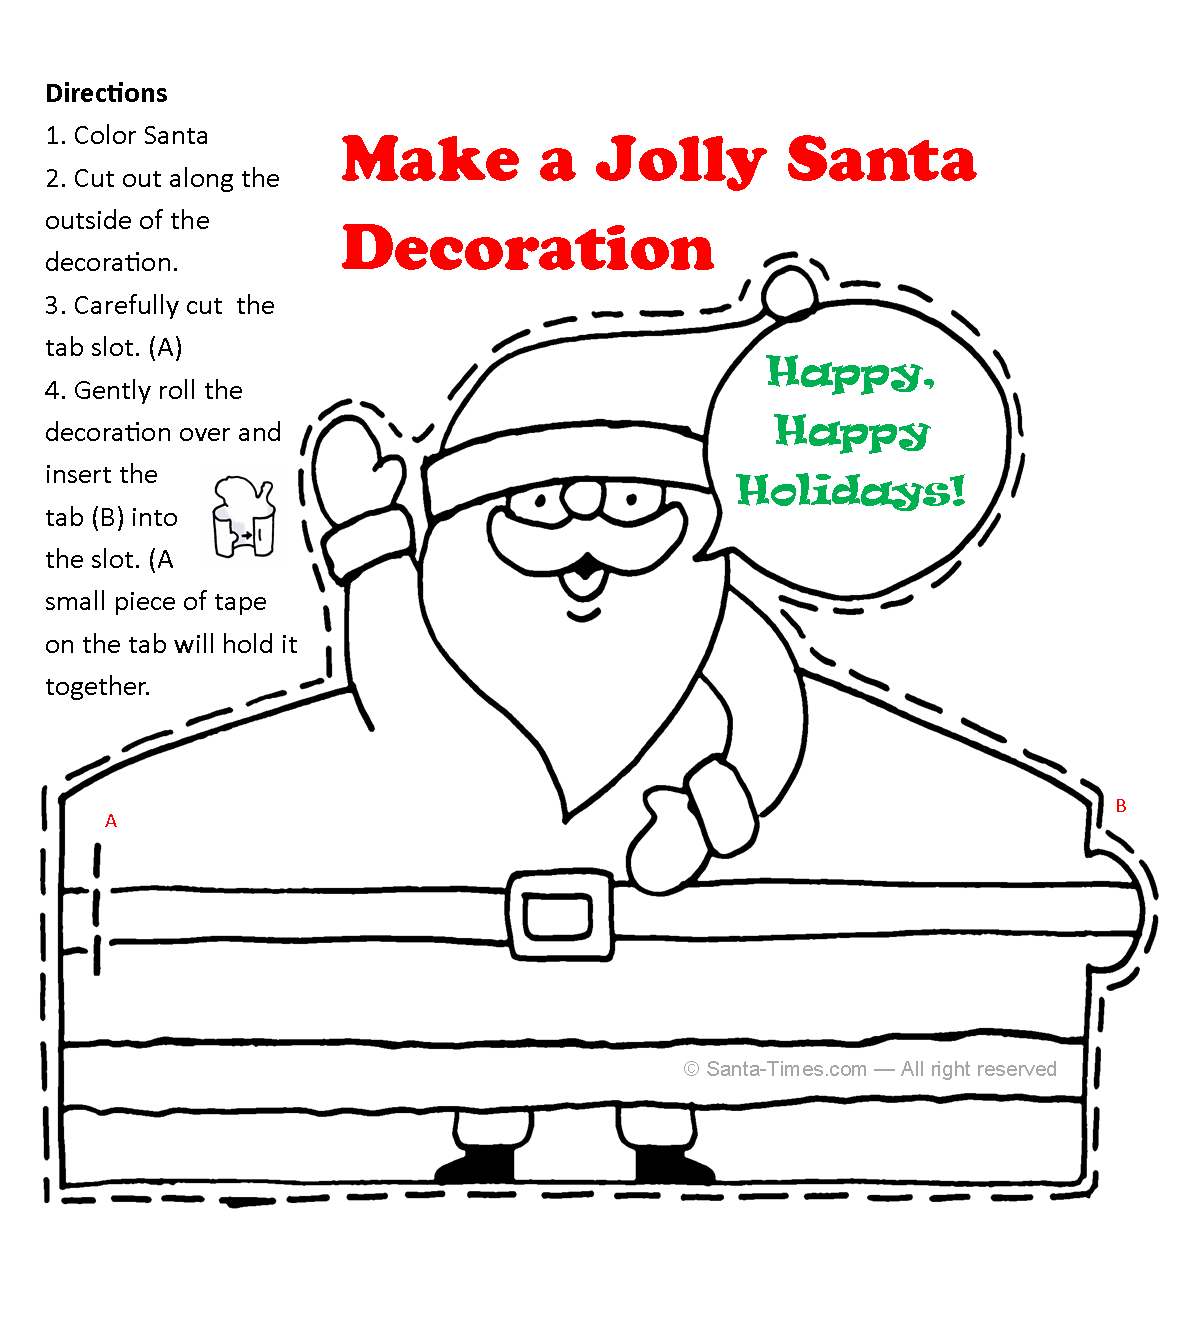 santa claus decoration printout - Print Out Pictures